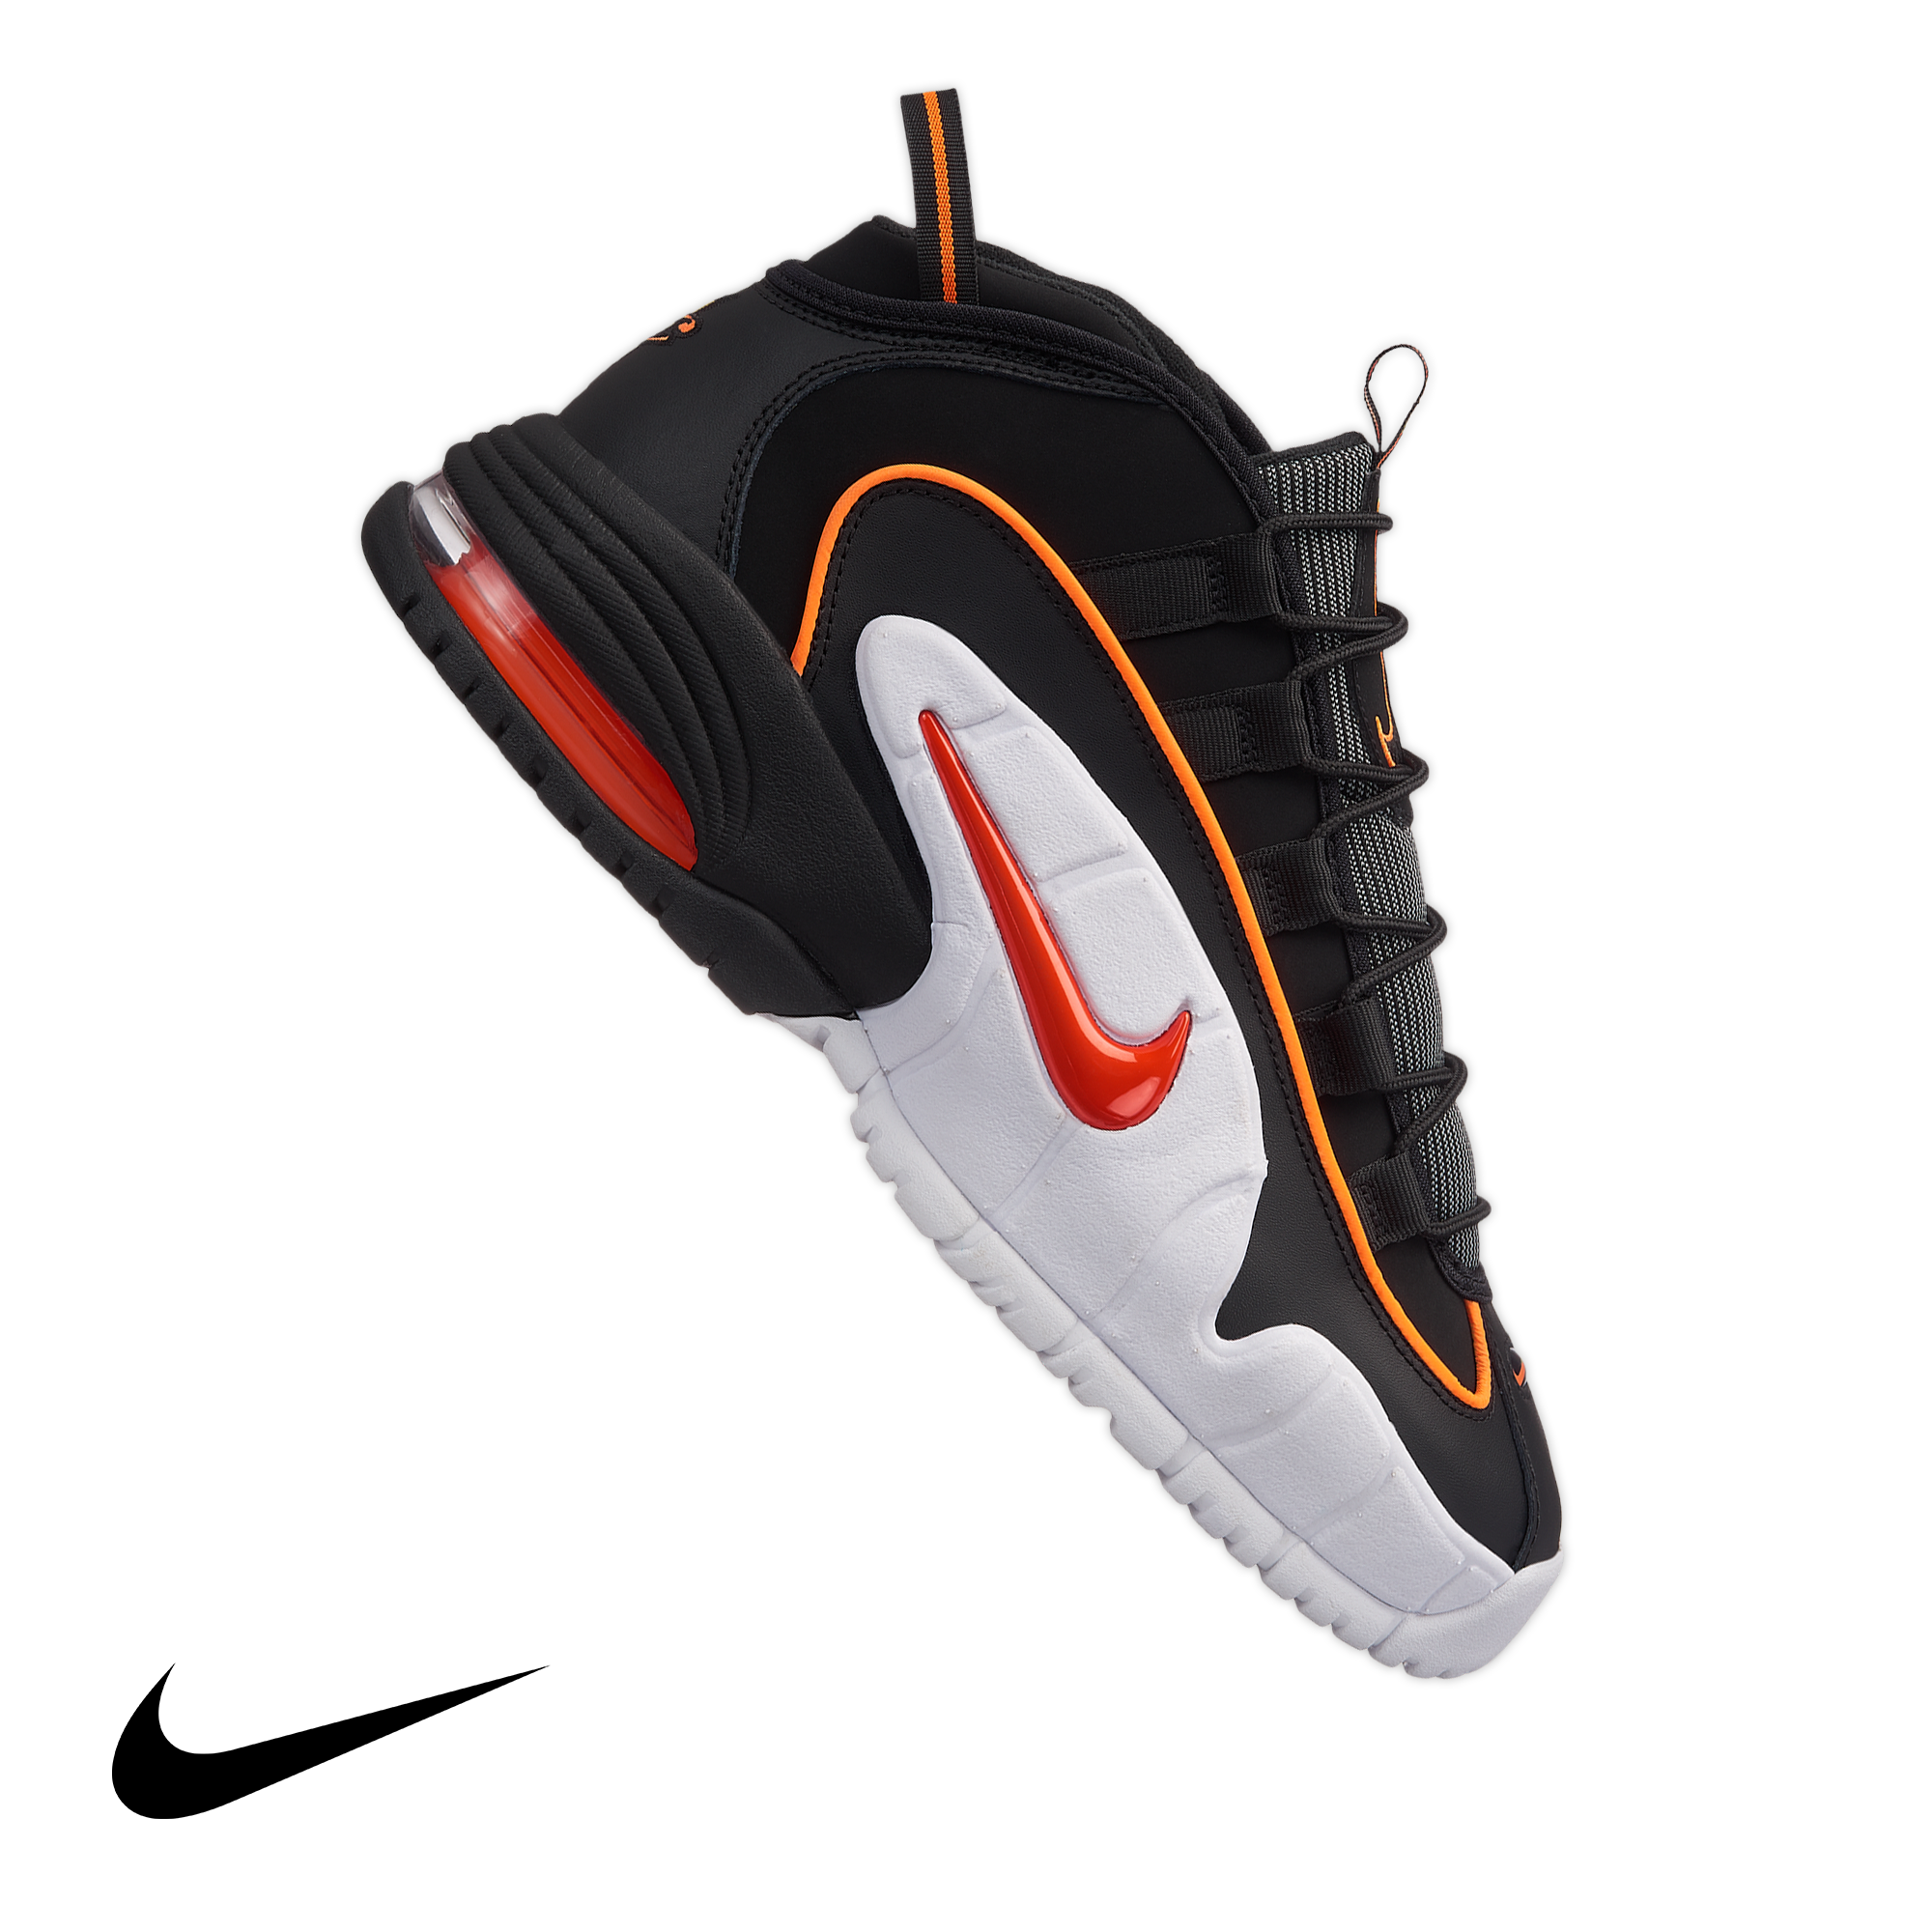 on sale 71fde 32ab7 Nike-Lebron James Shoes Sale USA Outlet Online, Discount Nike-Lebron James  Shoes With Free Shipping